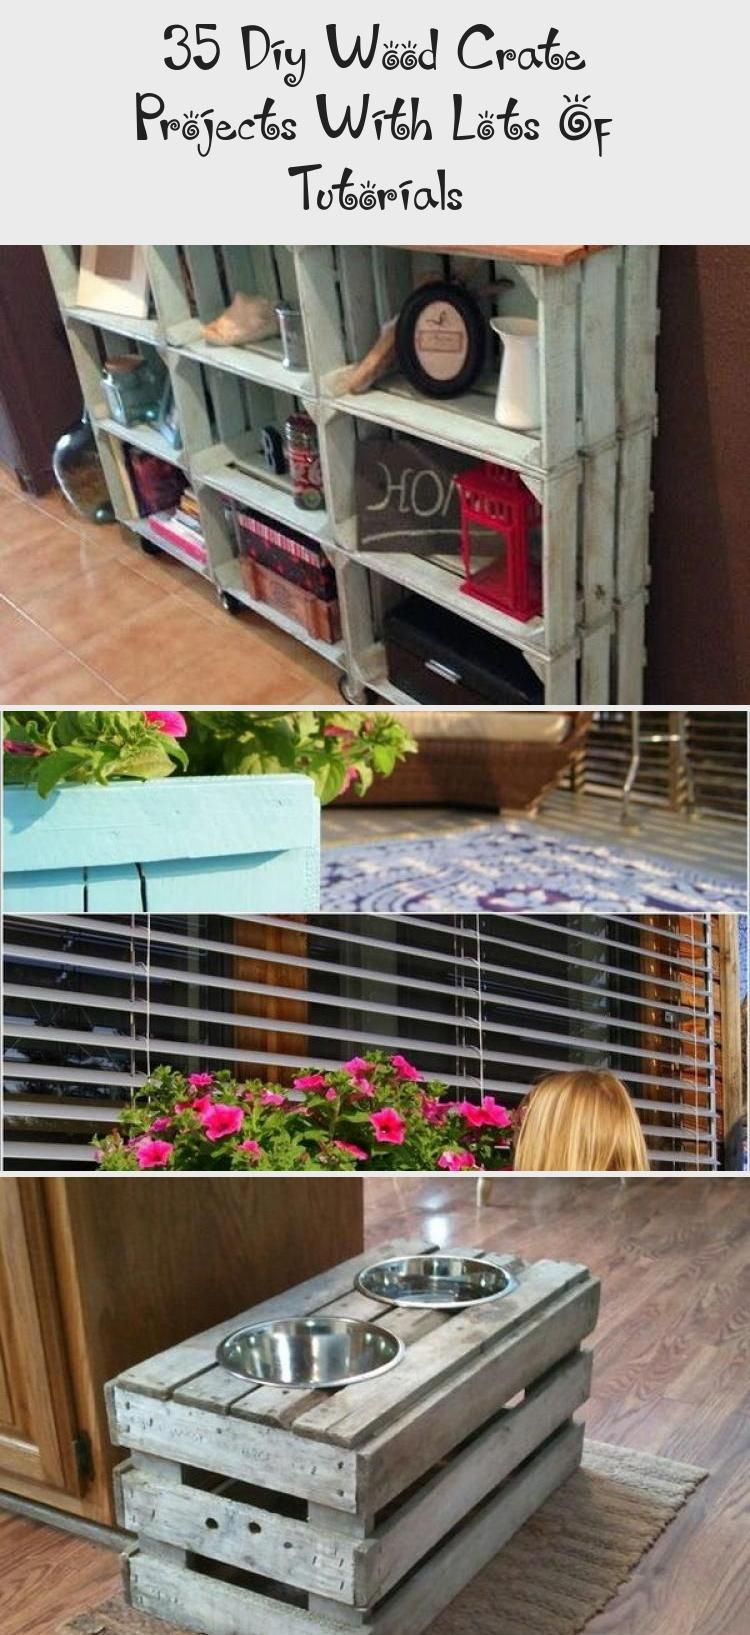 Photo of DIY Wood Crate Projects With Lots of Tutorials! #HomeDecorDIYWood